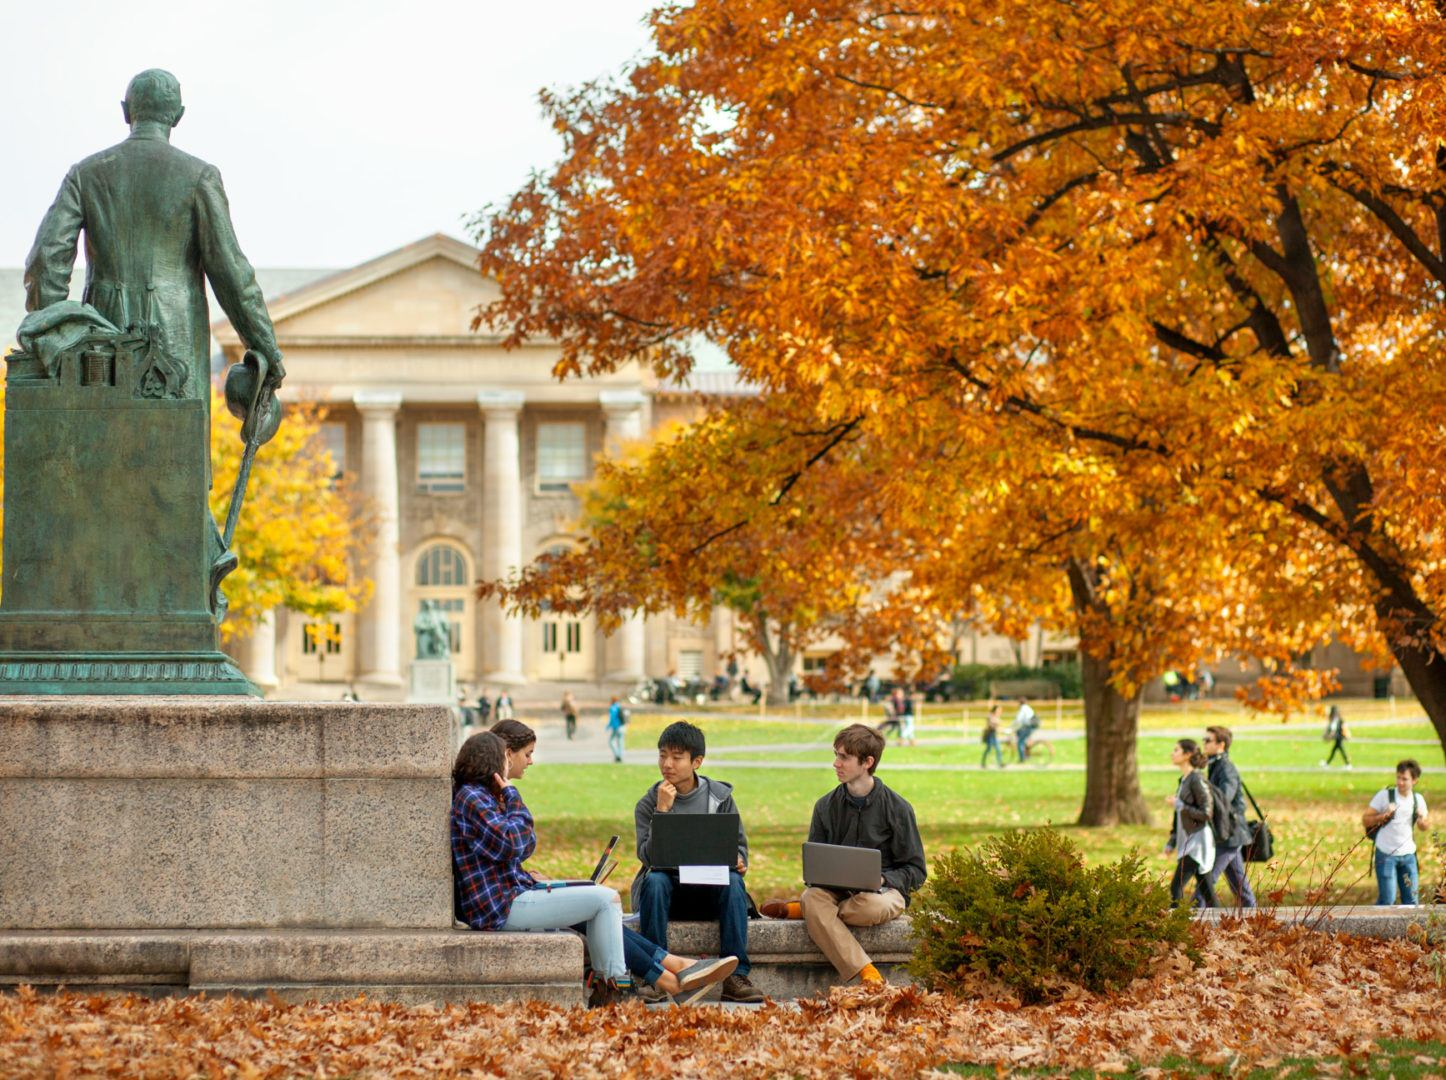 Students study near the statue of Ezra Cornell on the Arts Quad in fall.